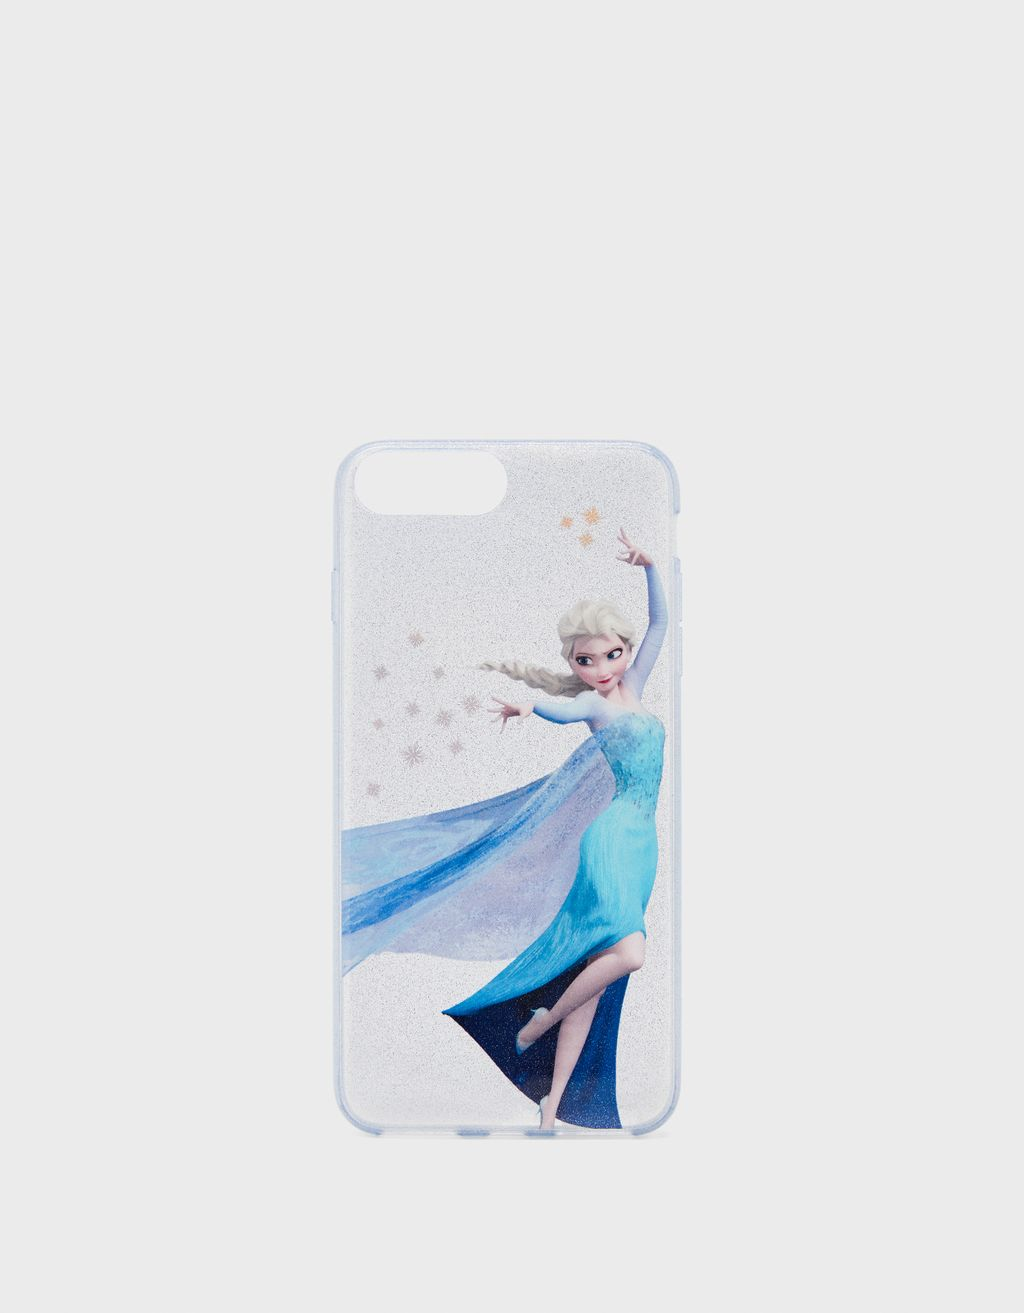 Carcasa Frozen iPhone 6 plus / 7 plus / 8 plus